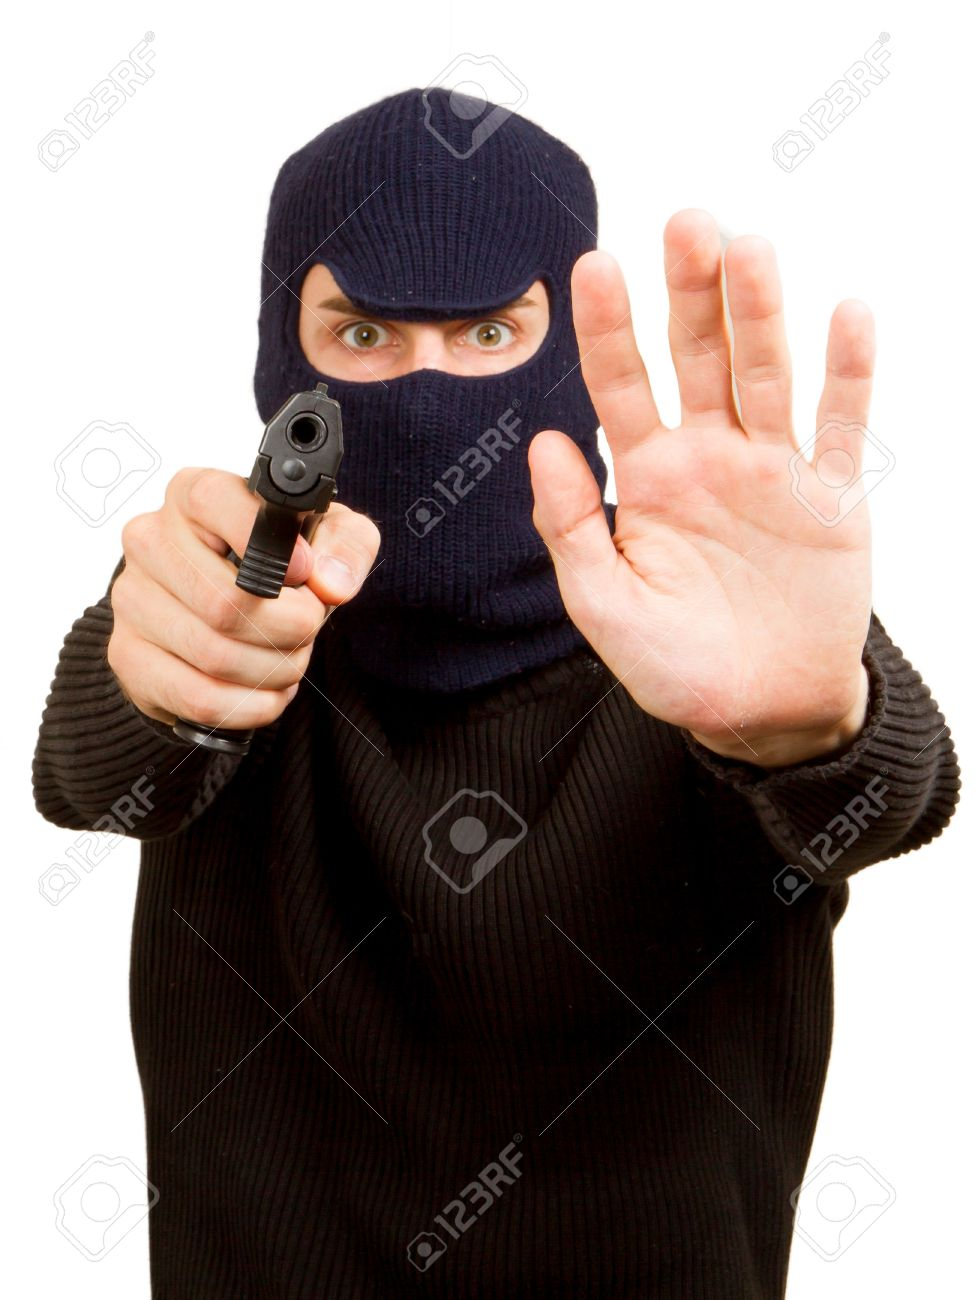 Photo of terrorist with gun attacking someone while pointing it forwards Stock Photo - 14524939